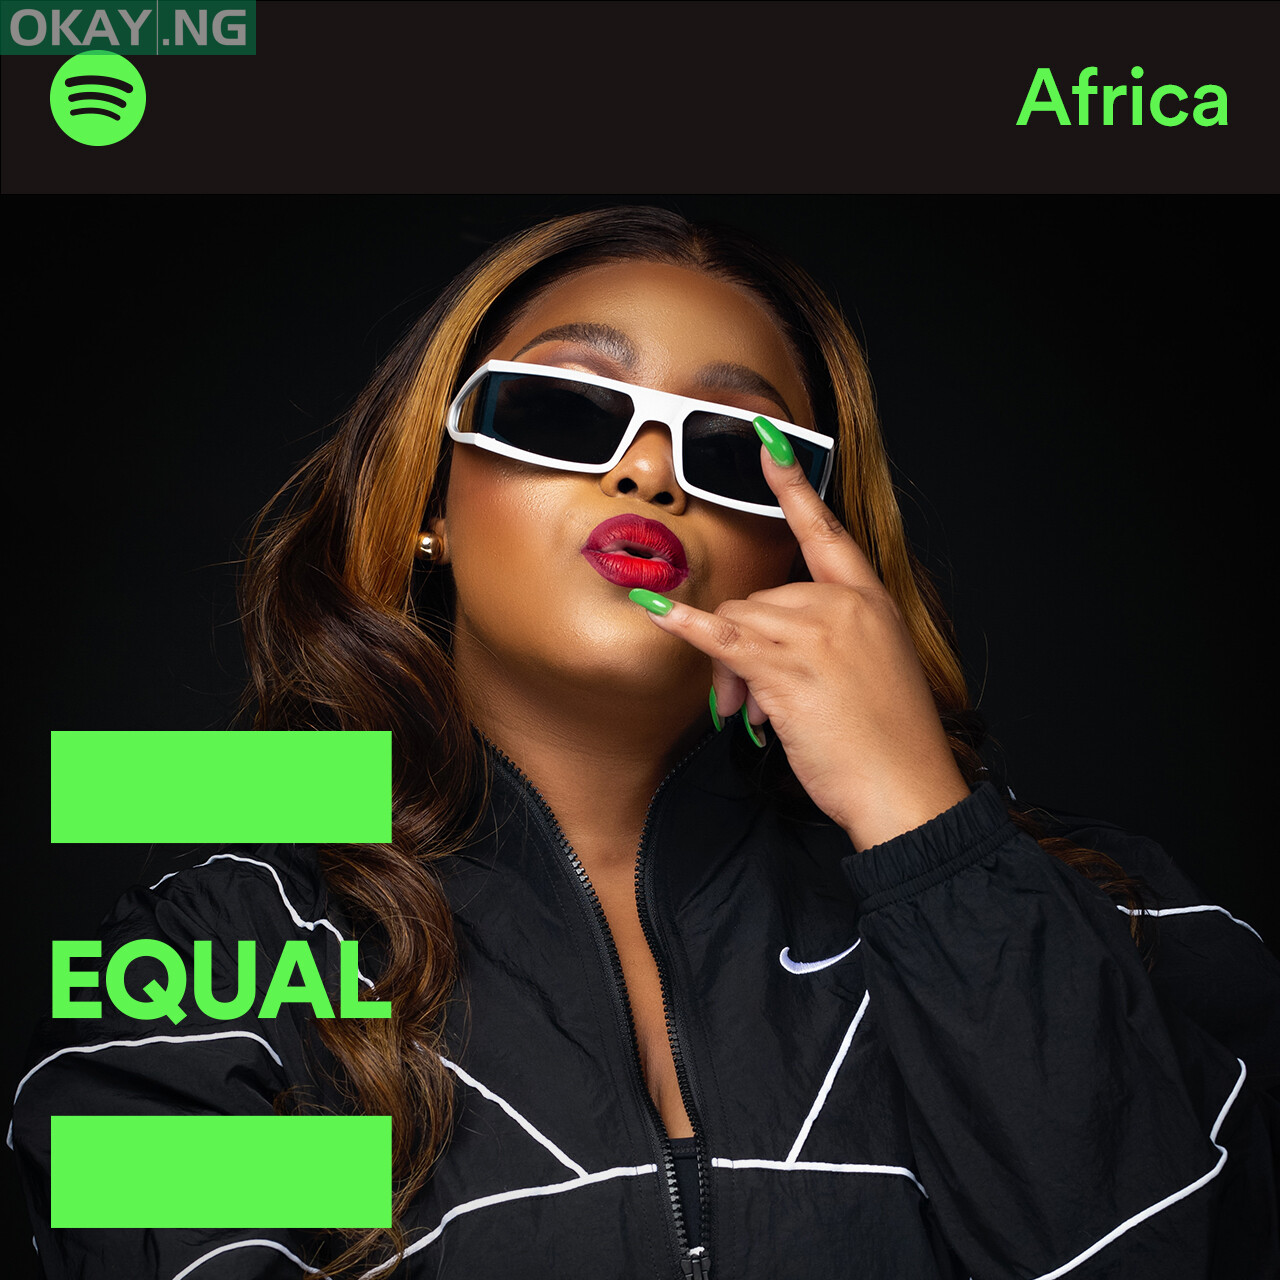 DBN Gogo joins joins Spotify's Global EQUAL Music Programme